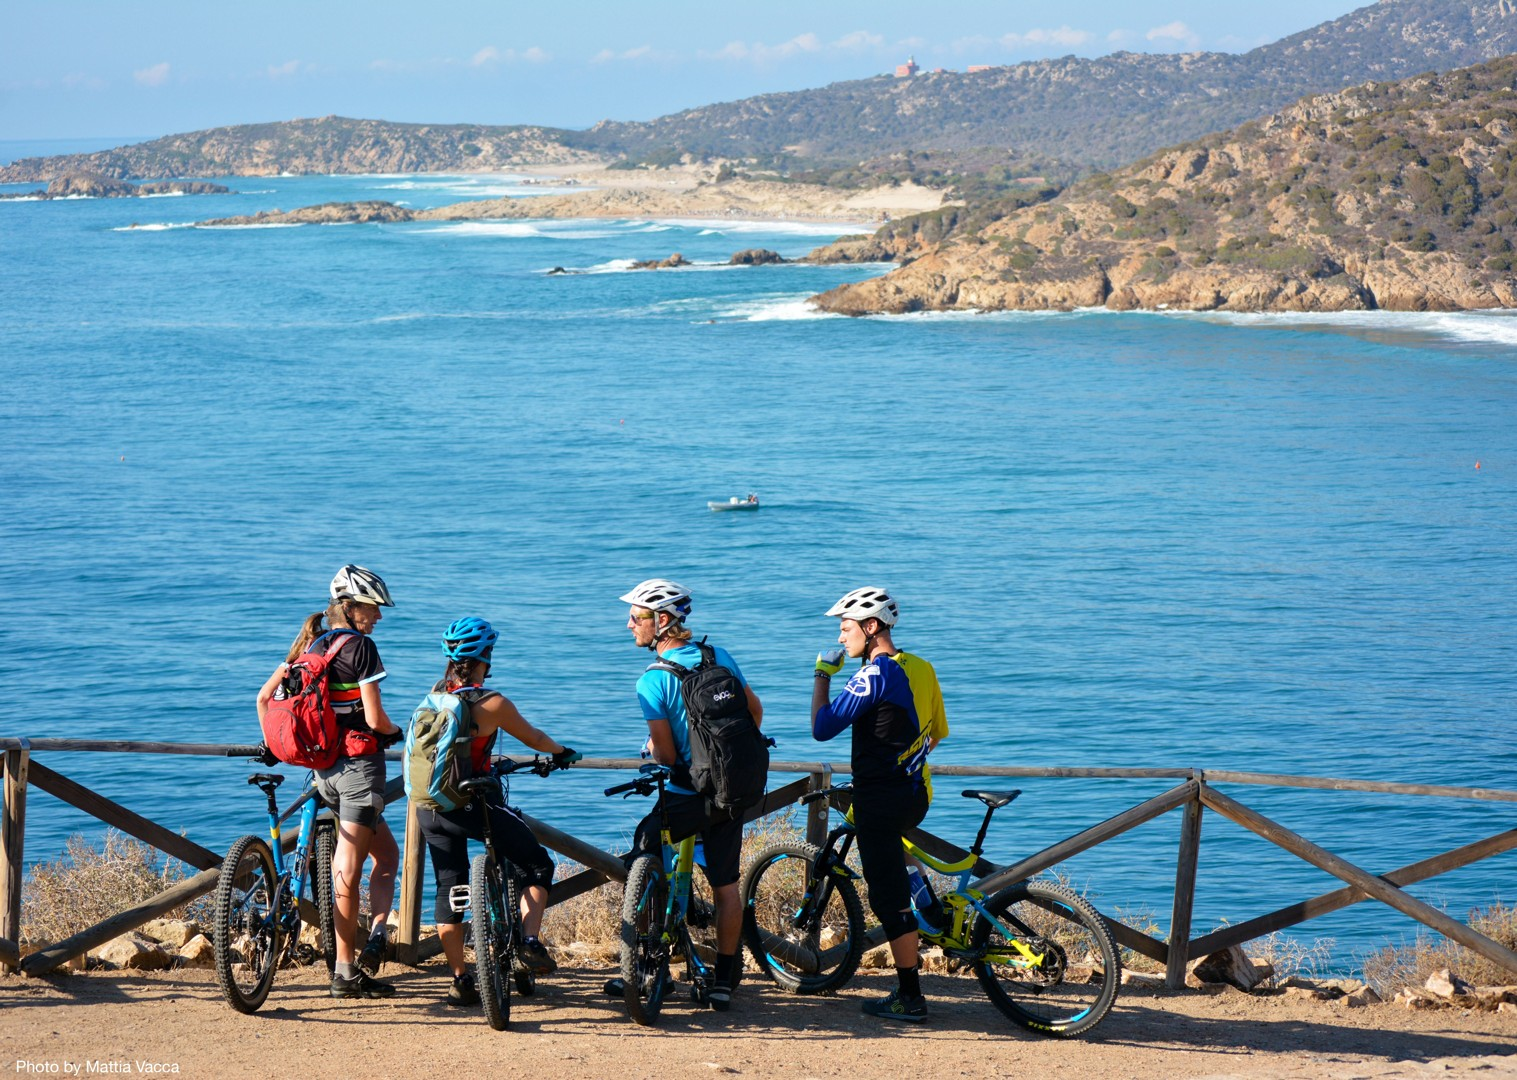 santadi-guided-mountain-bike-holiday-italy-sardinia-sardinian-enduro.jpg - Sardinia - Sardinian Enduro - Guided Mountain Bike Holiday - Mountain Biking